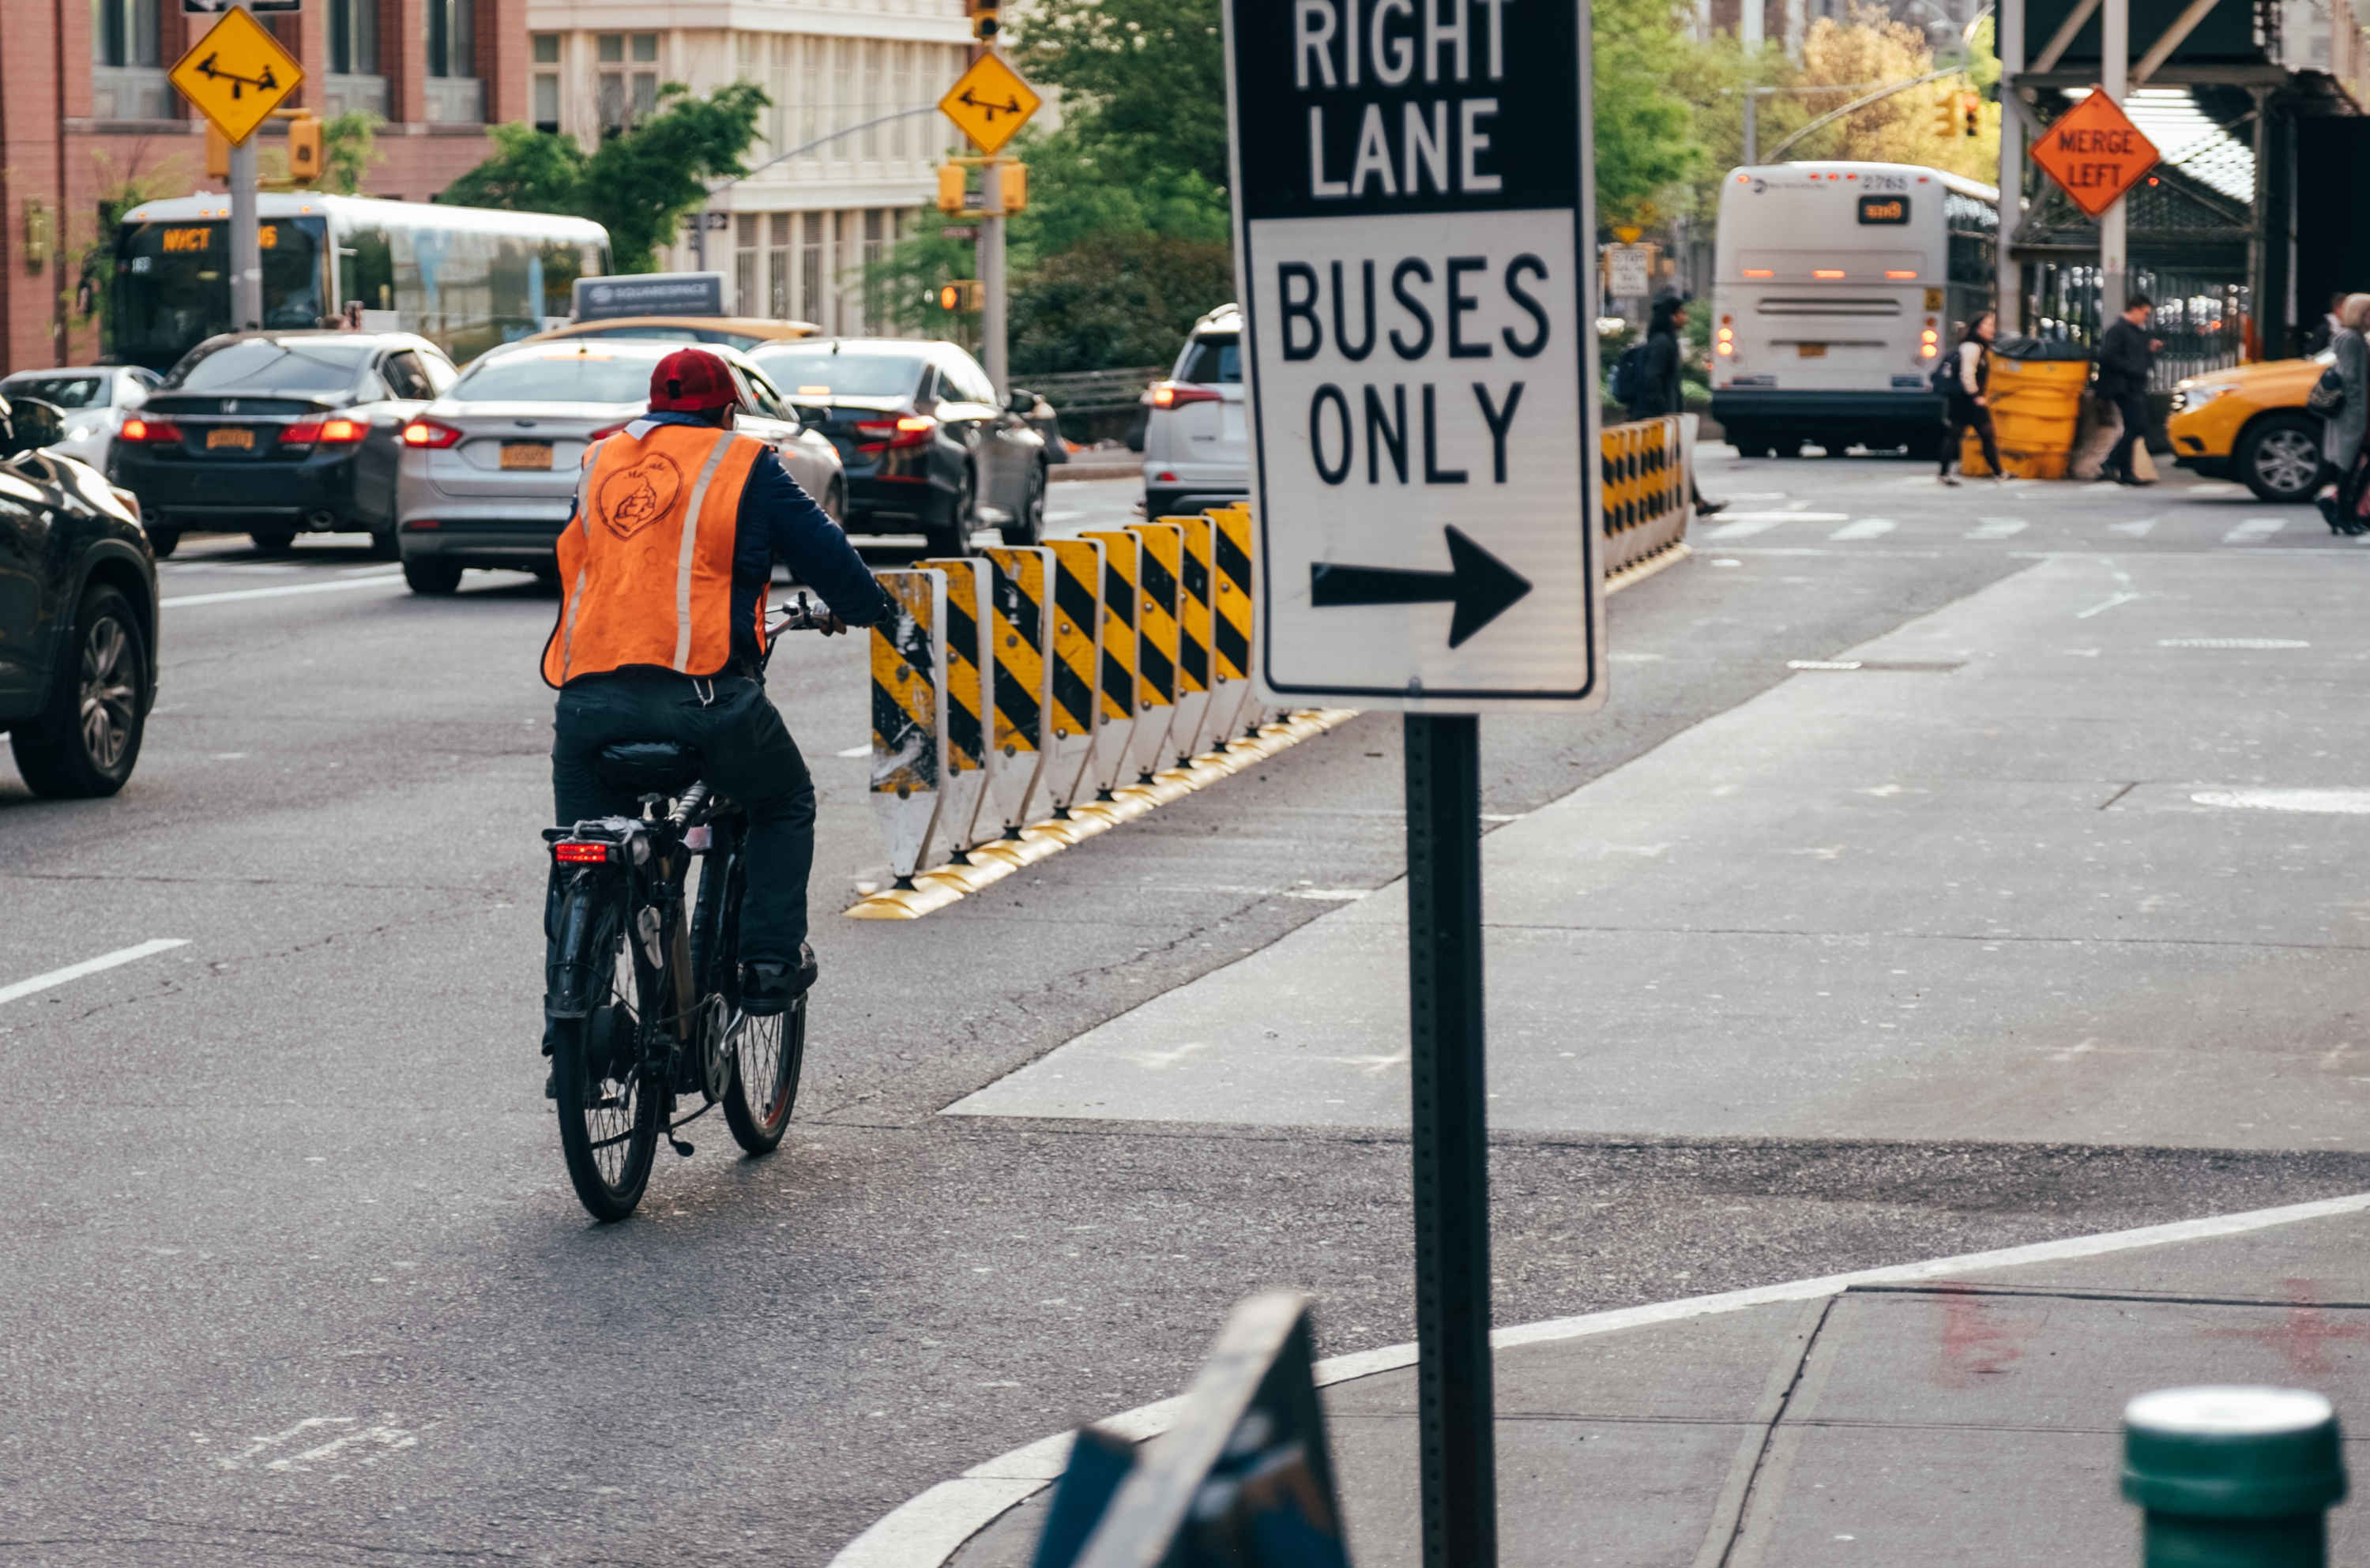 A cyclist rides down a pop-up cycle lane, protected by temporary barriers.